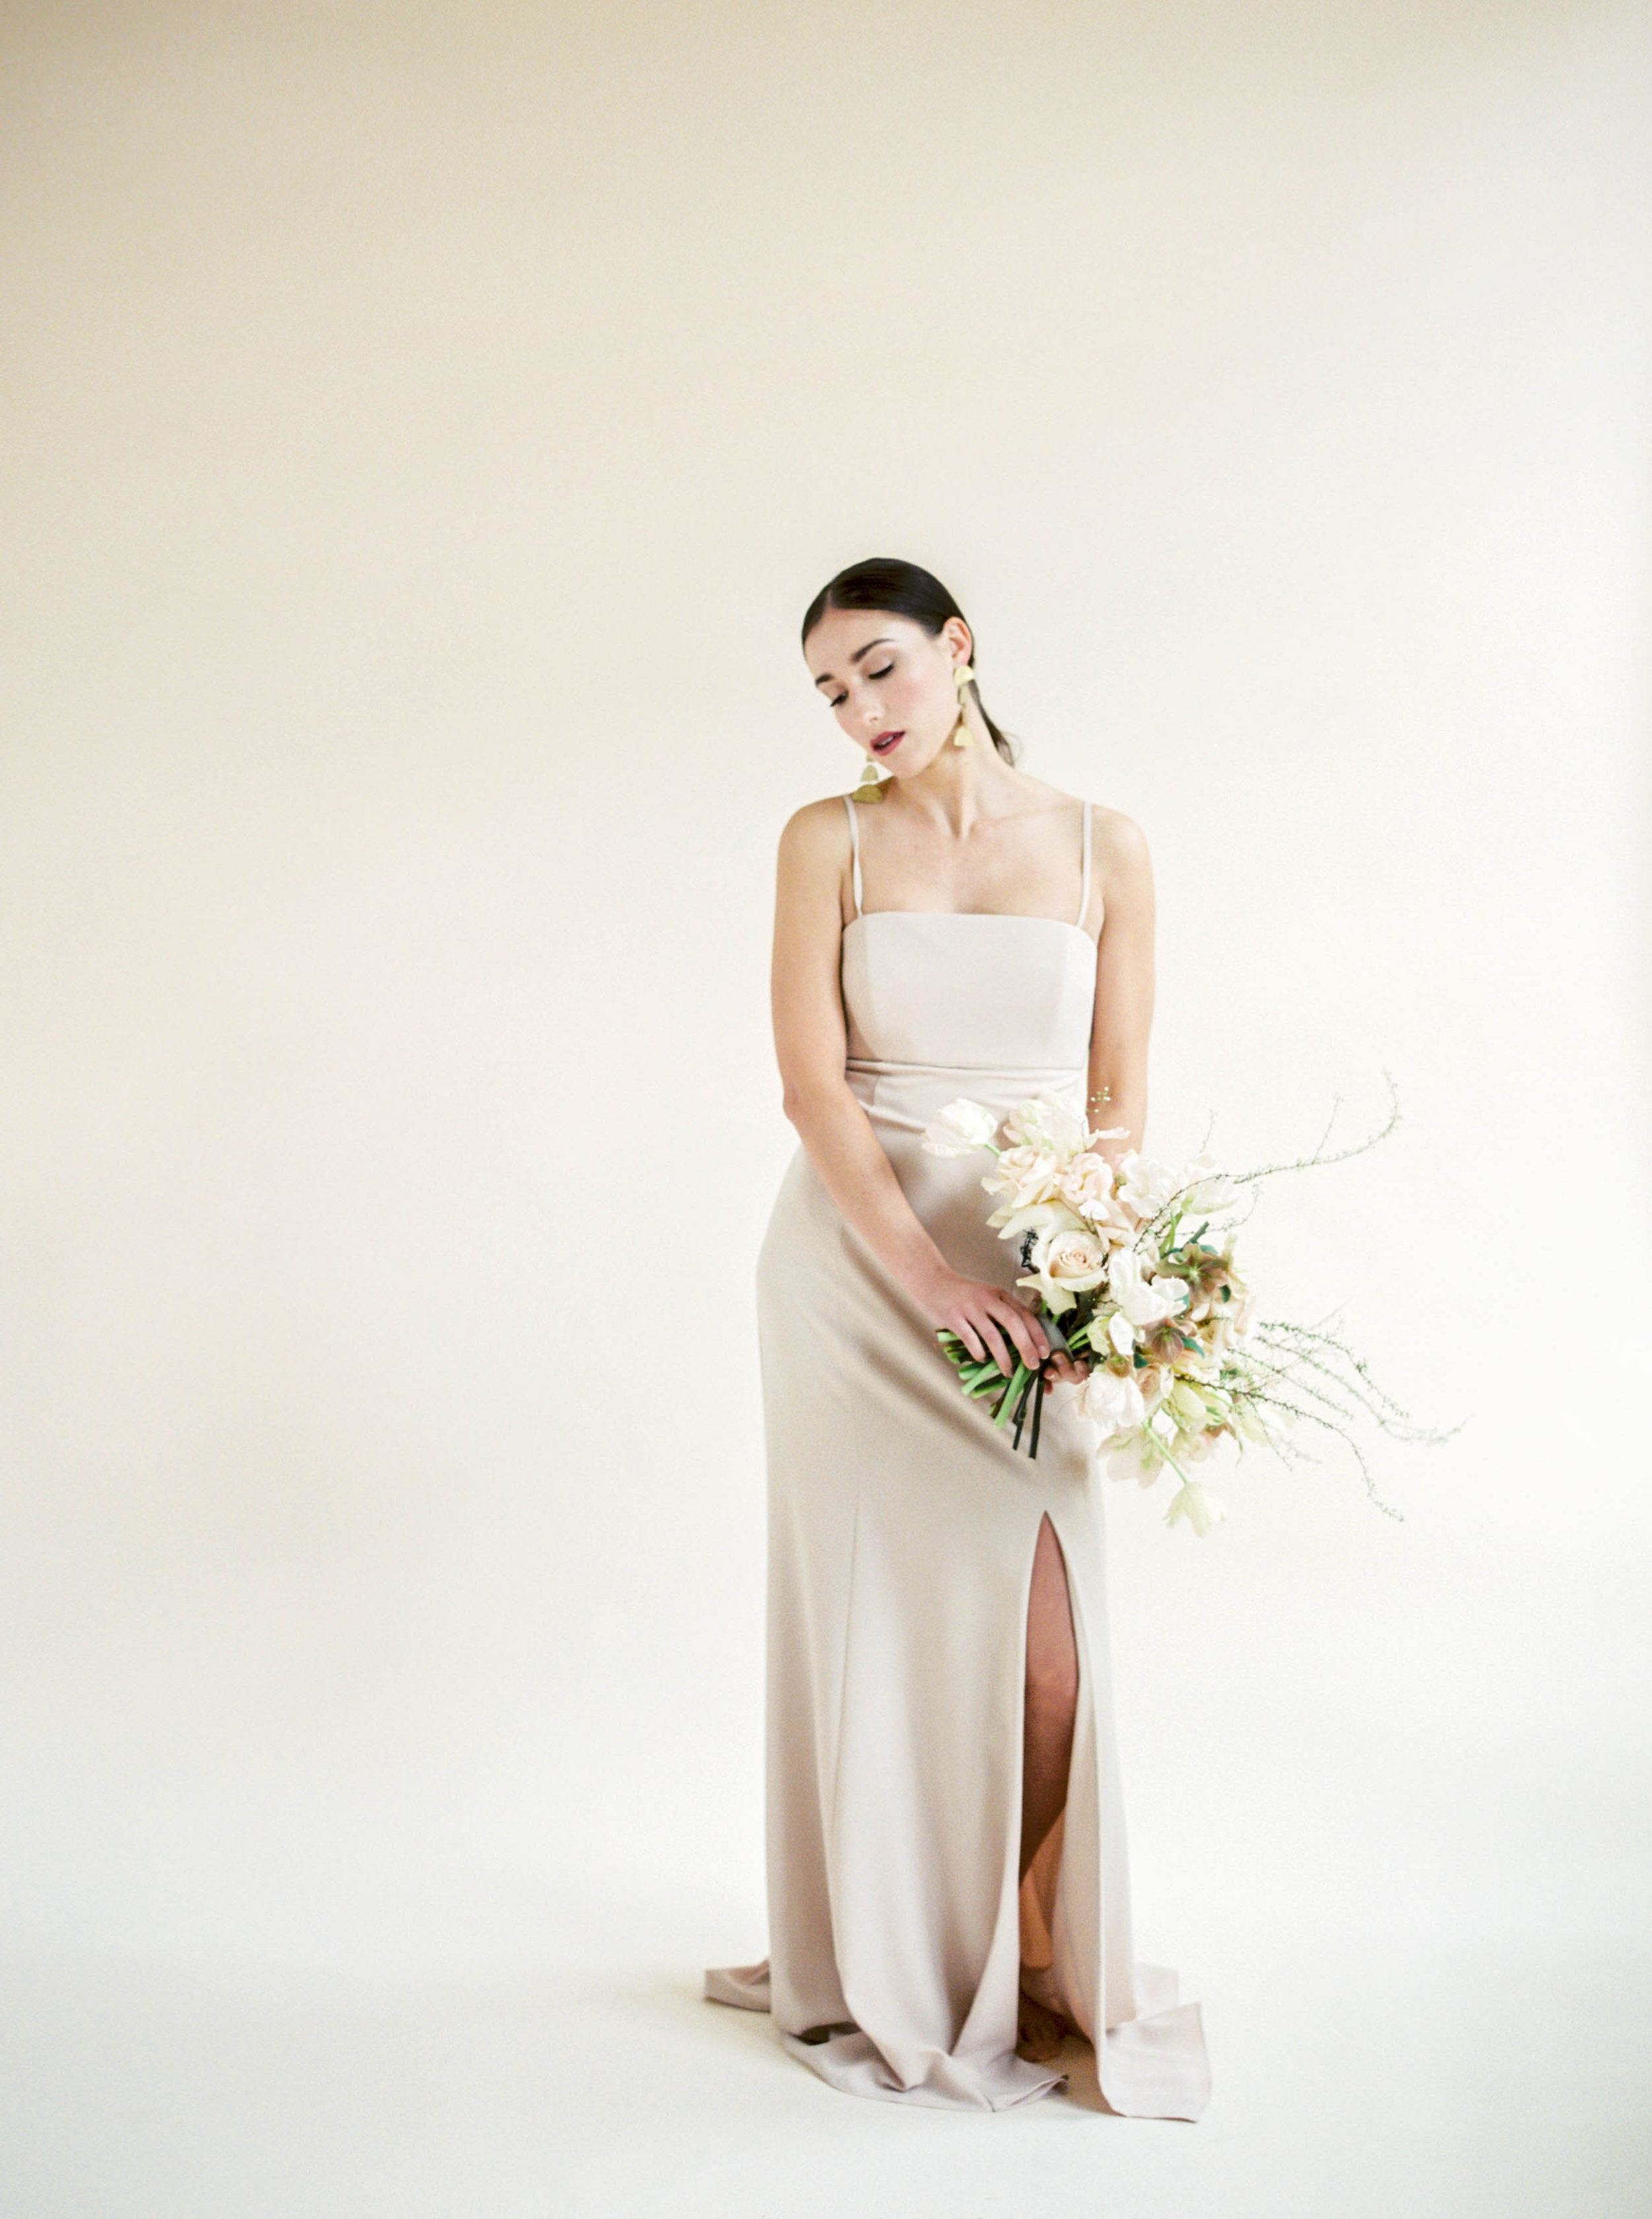 Columbus Ohio styled shoot featuring Bray by Amsale Bridesmaids